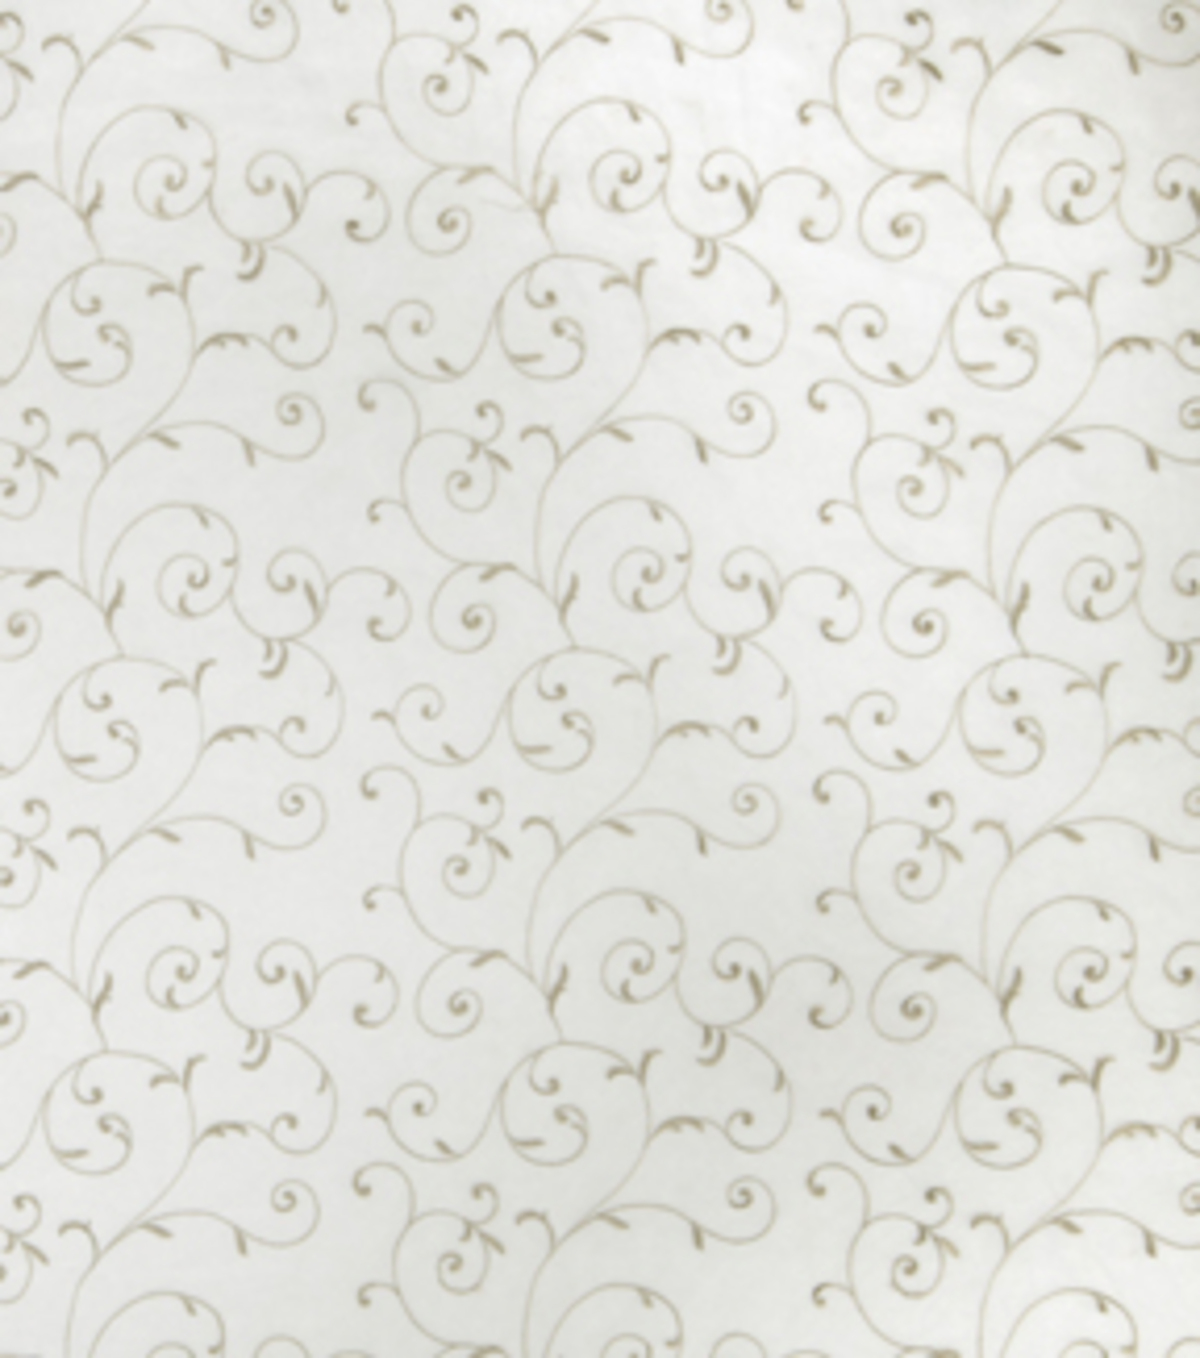 Home Decor 8\u0022x8\u0022 Fabric Swatch-Sheer Fabric SMC Designs Isaac Sage